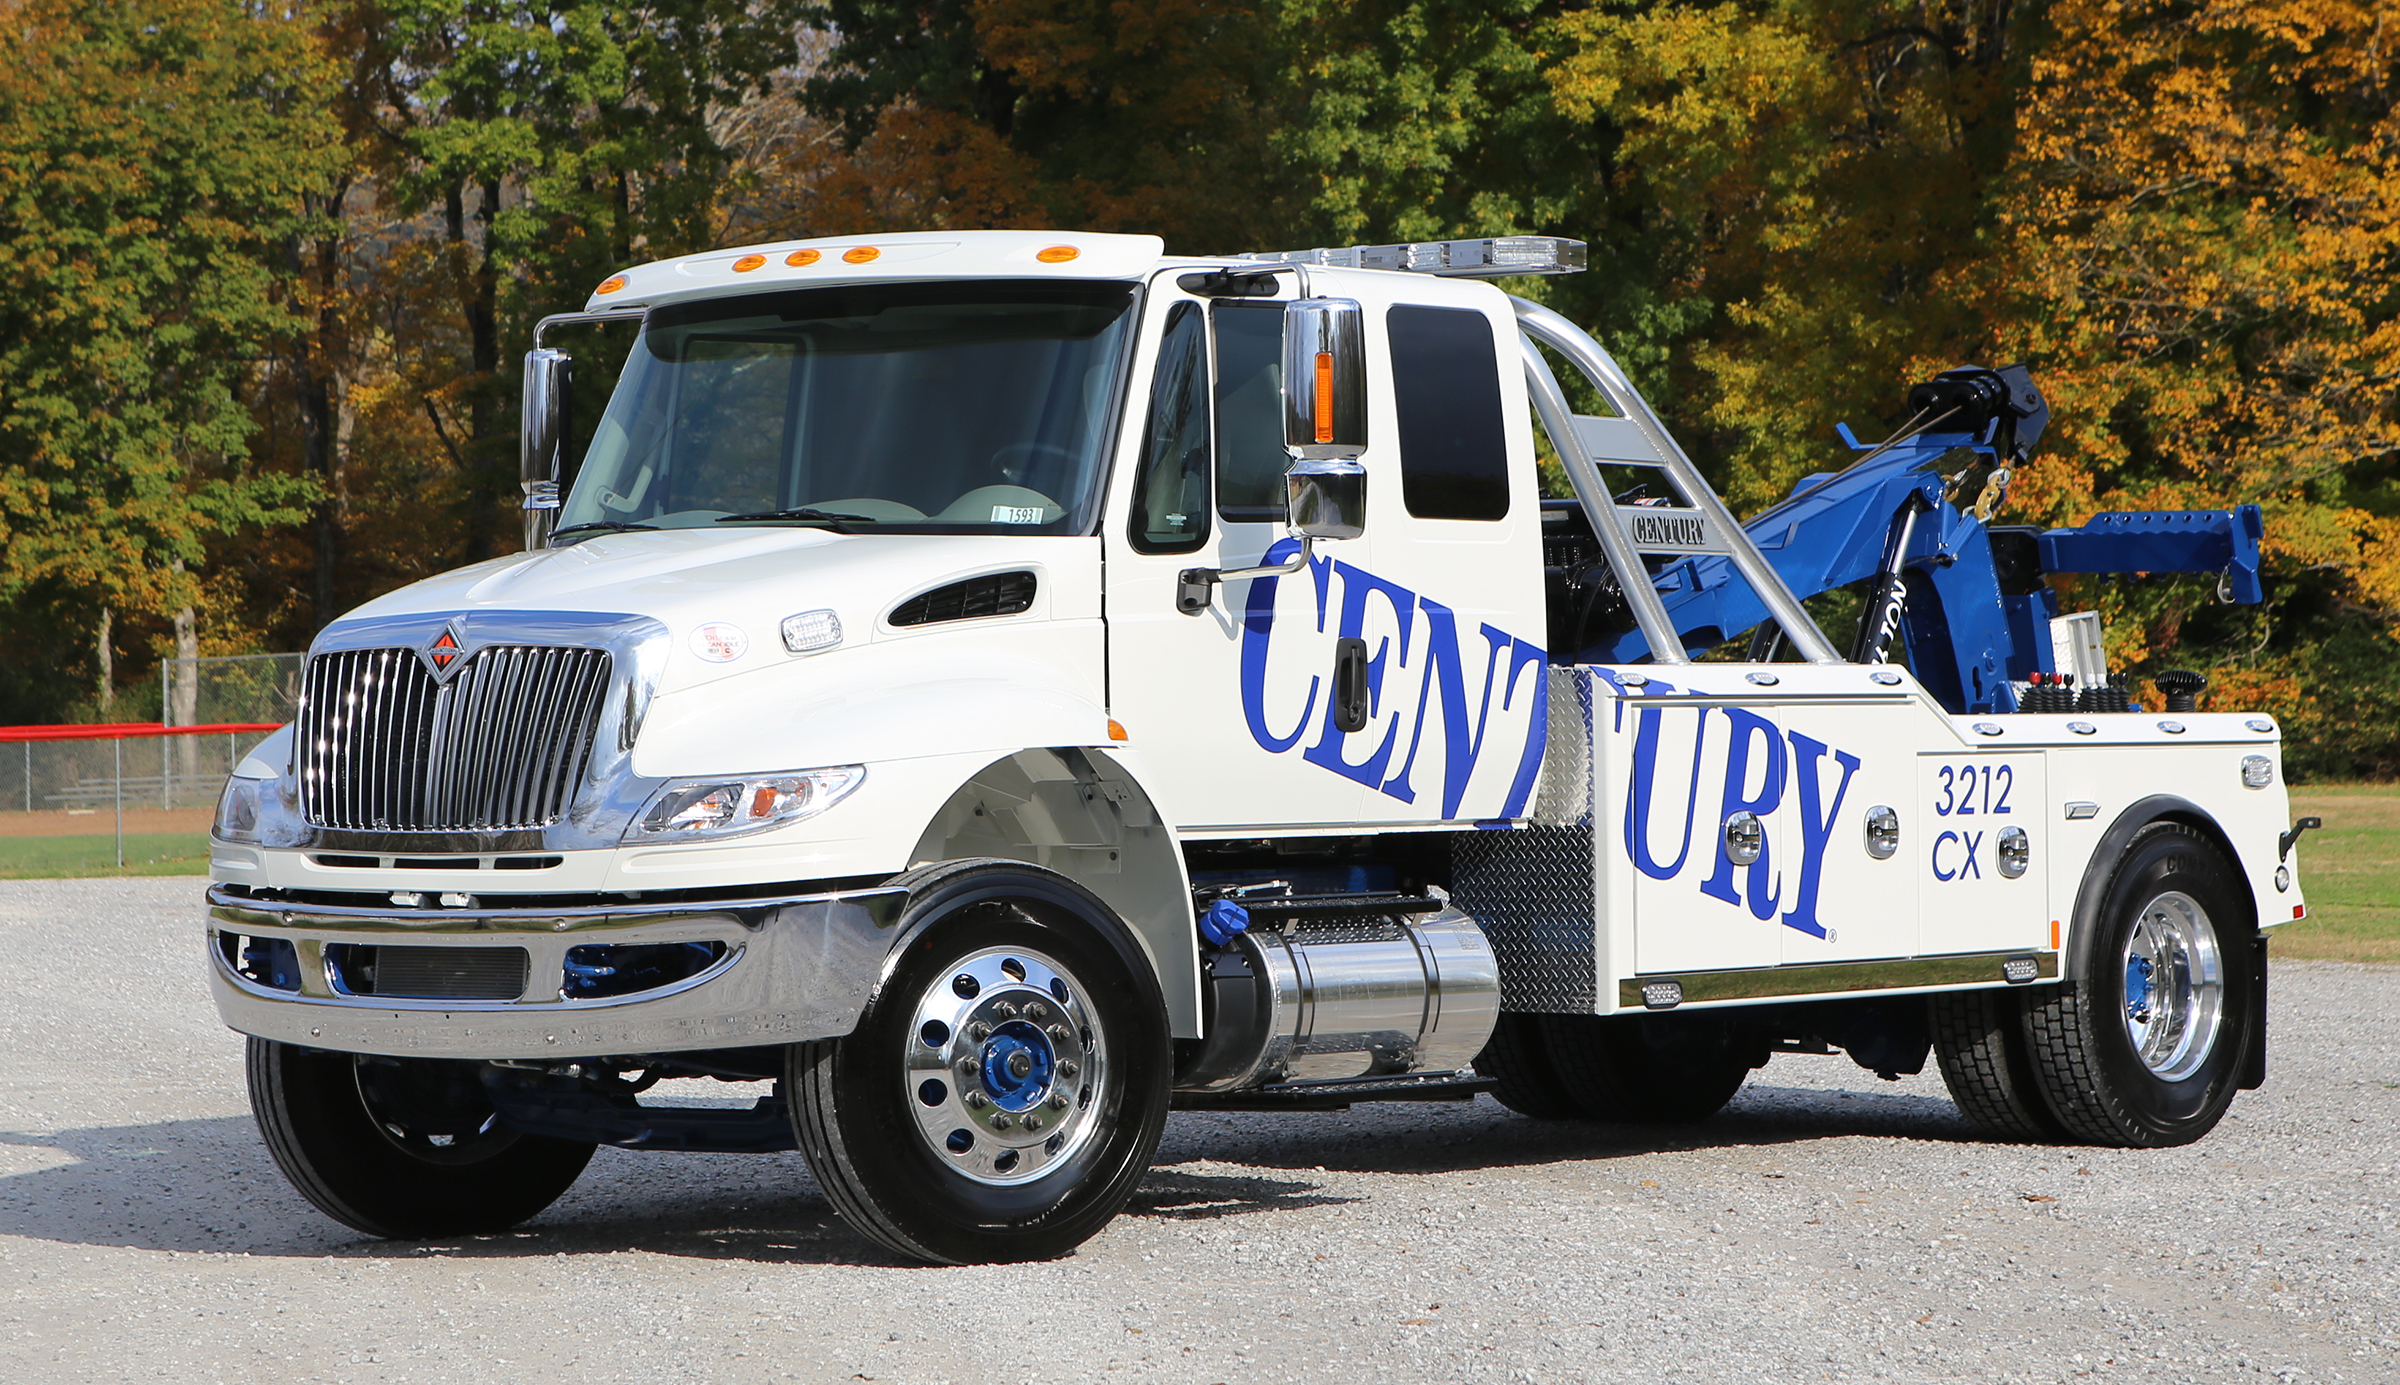 Century 3212CX / International 4300X